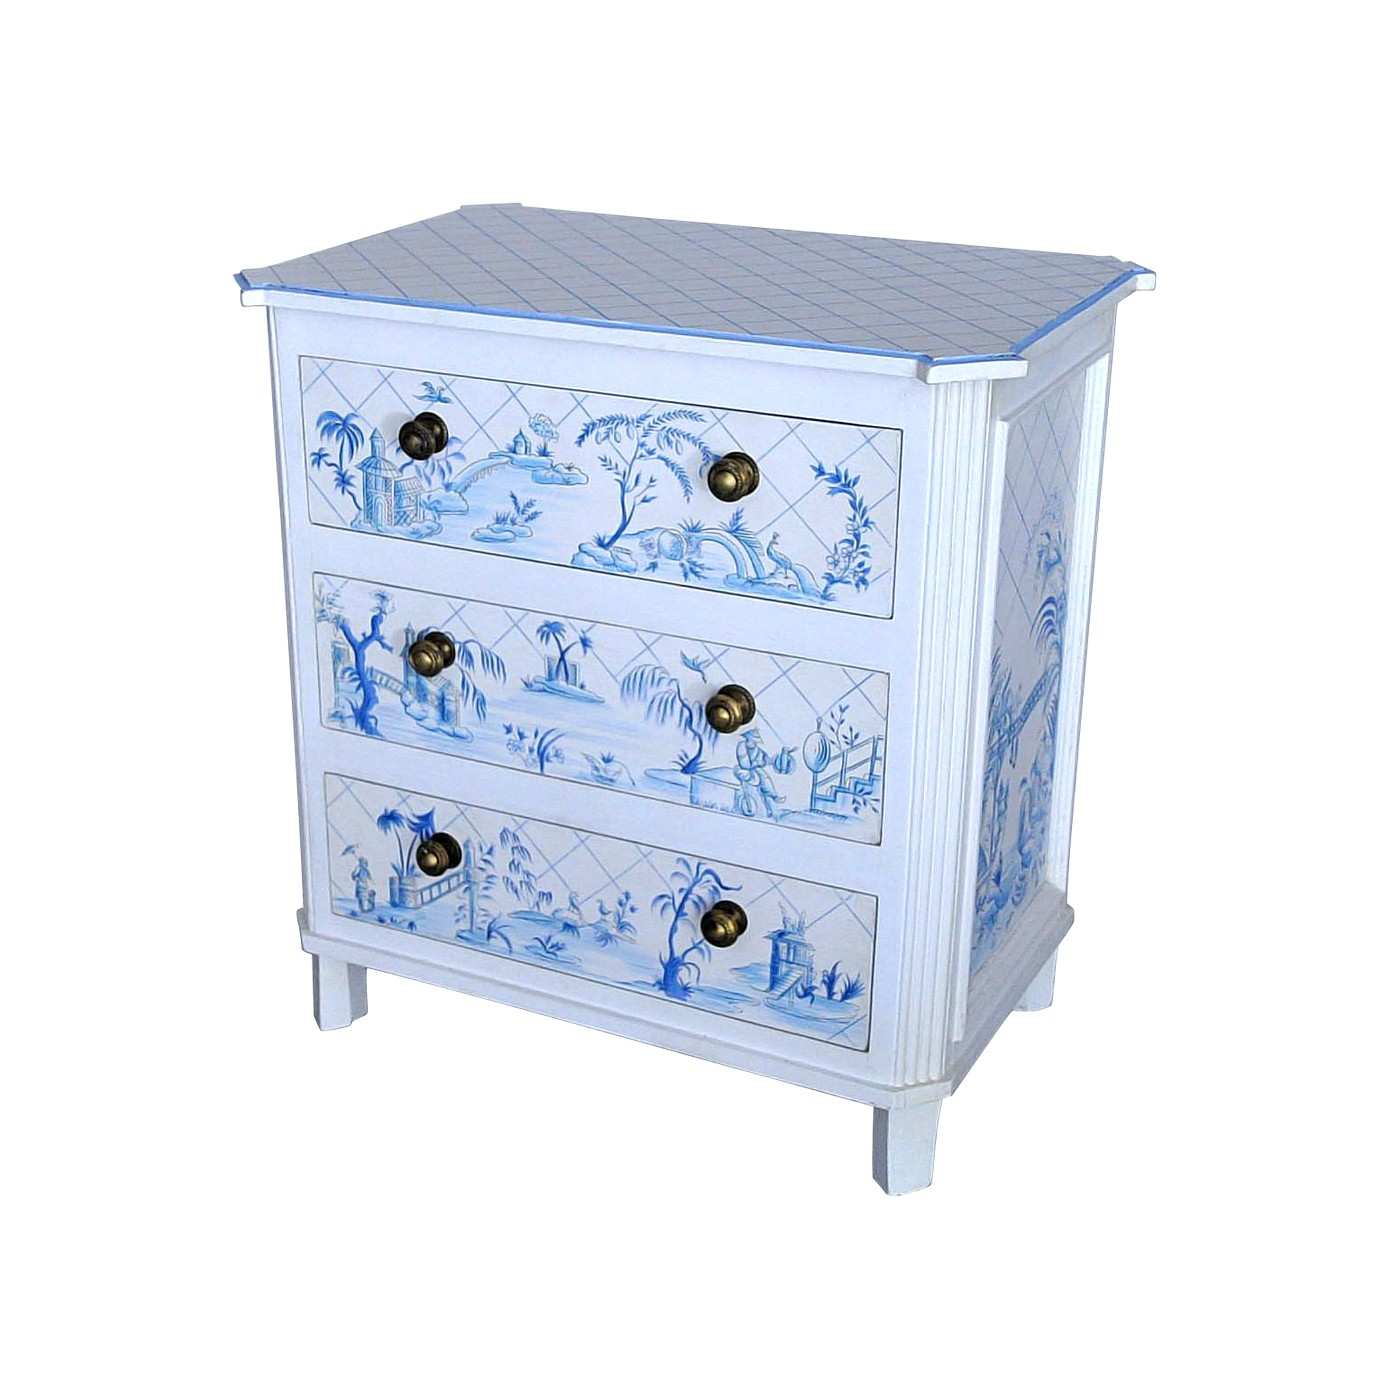 commode blanche d cor bleu style toile de jouy demeure. Black Bedroom Furniture Sets. Home Design Ideas